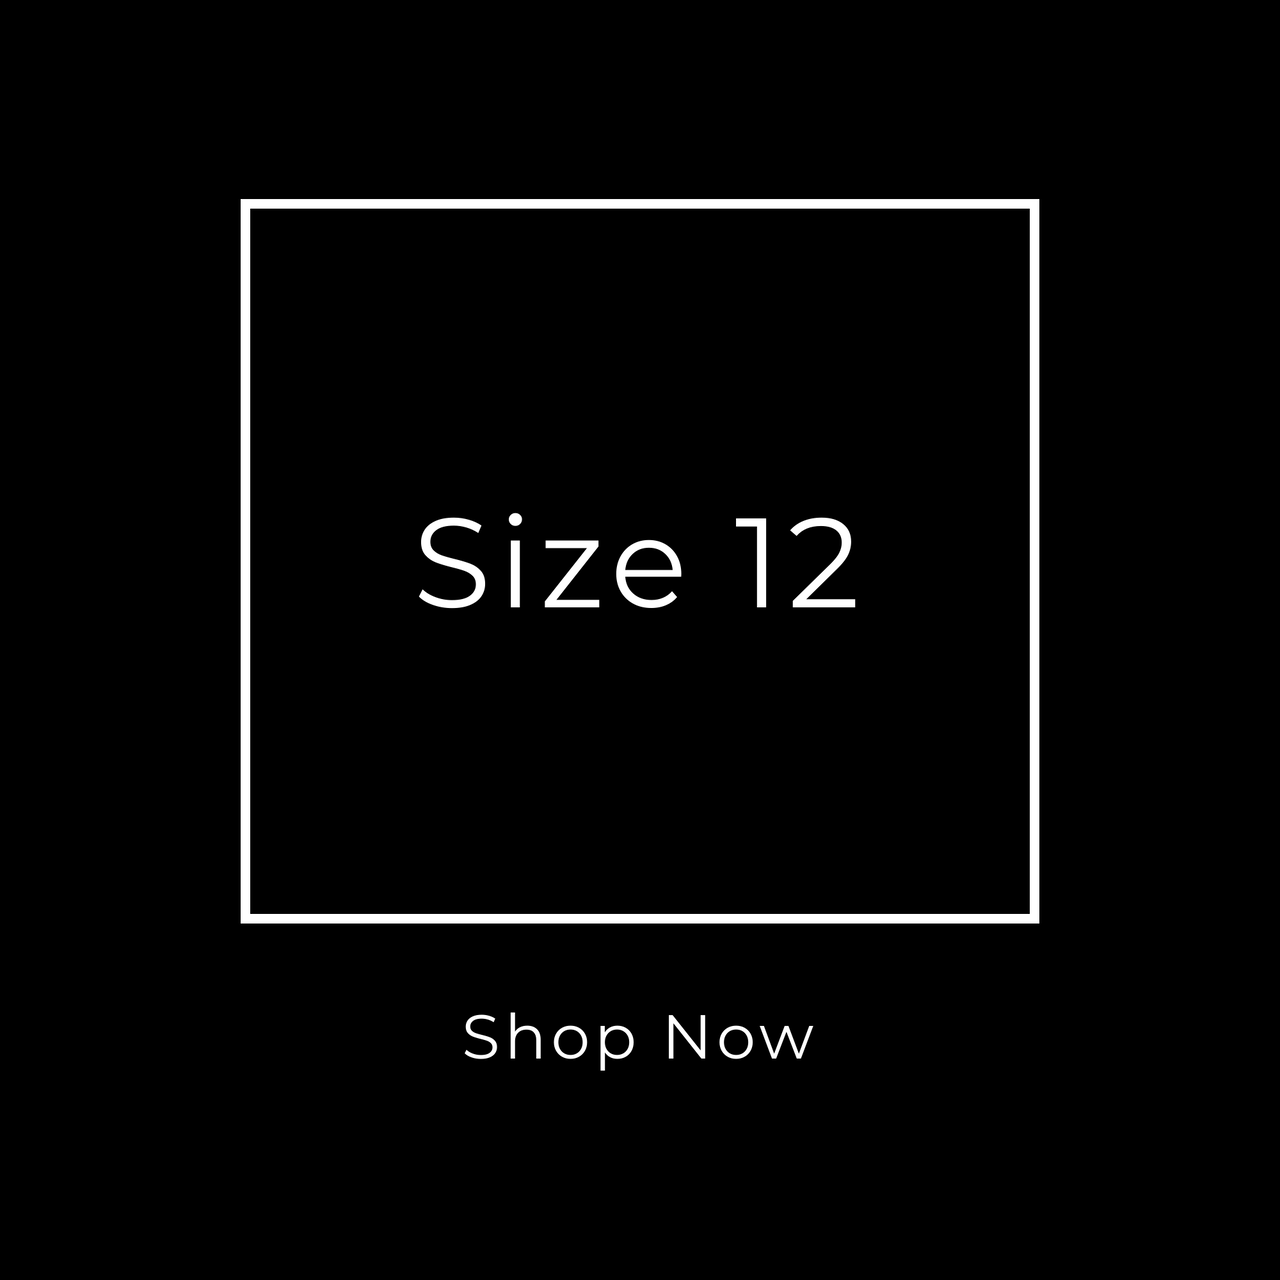 Size 12